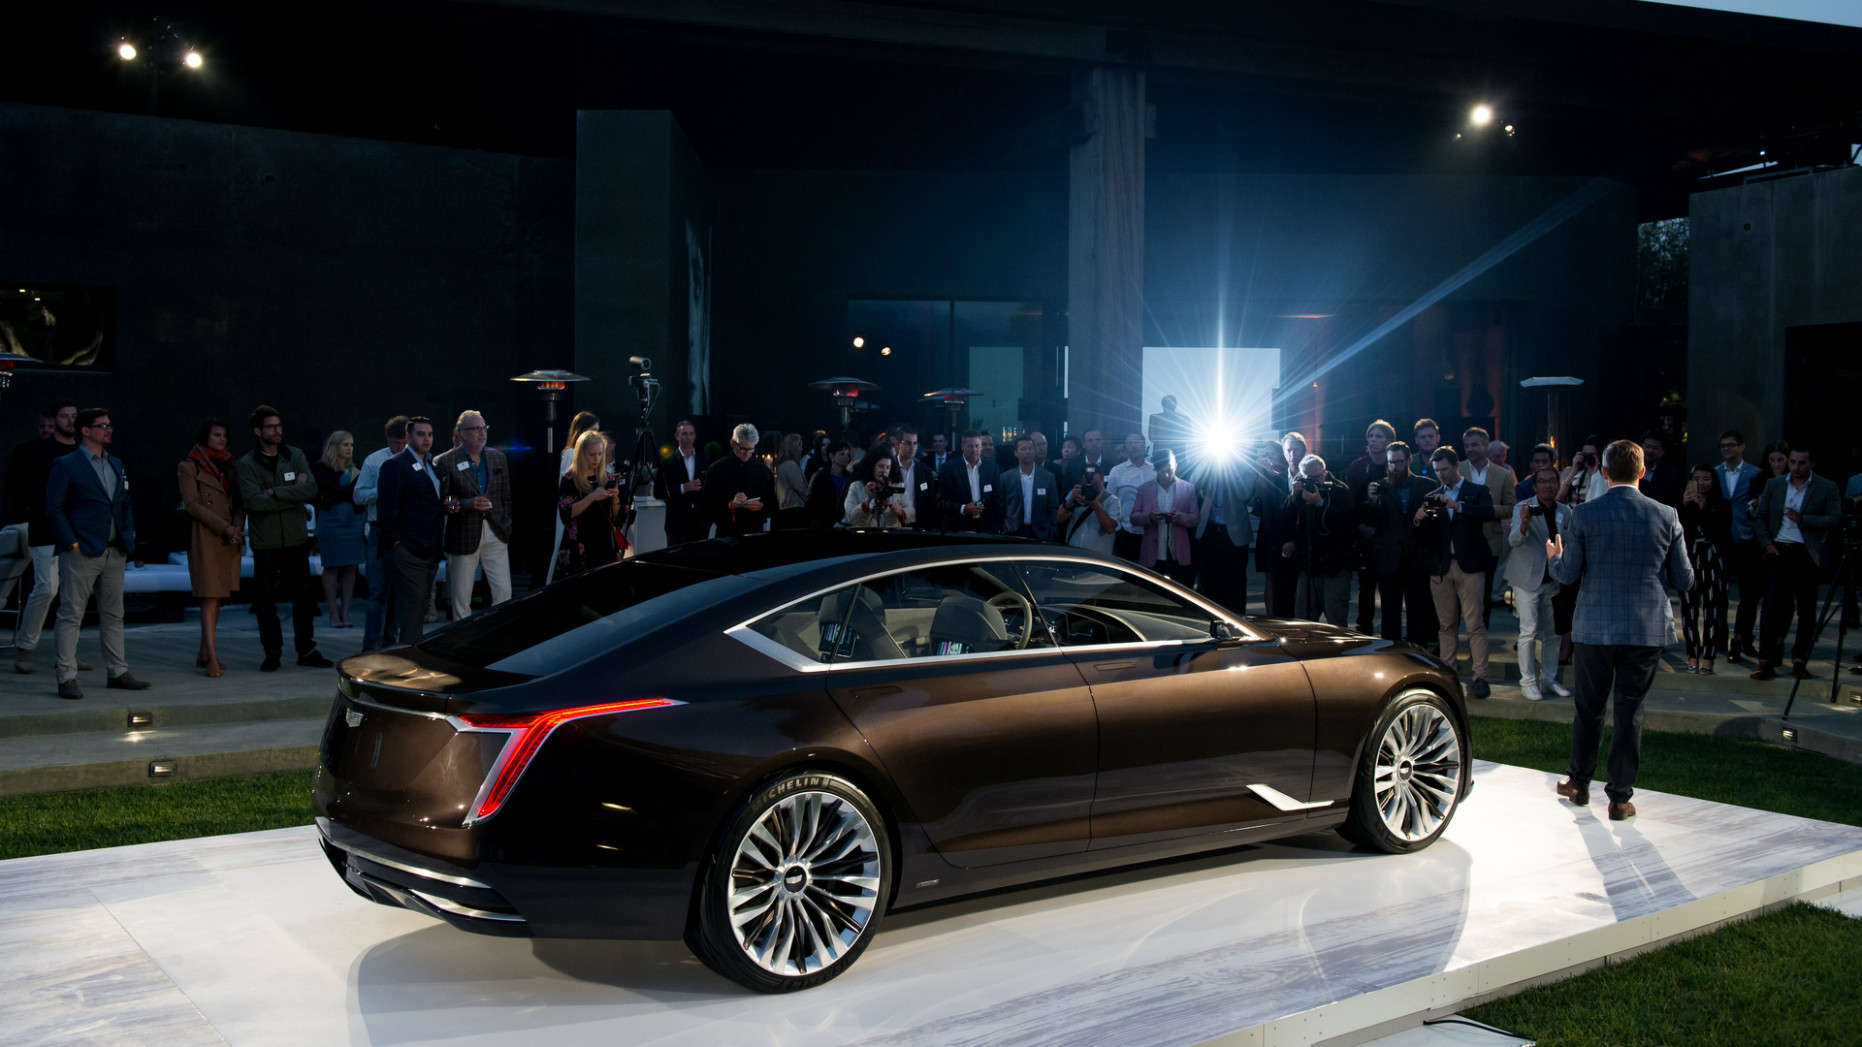 2022 cadillac limo - cars review : cars review